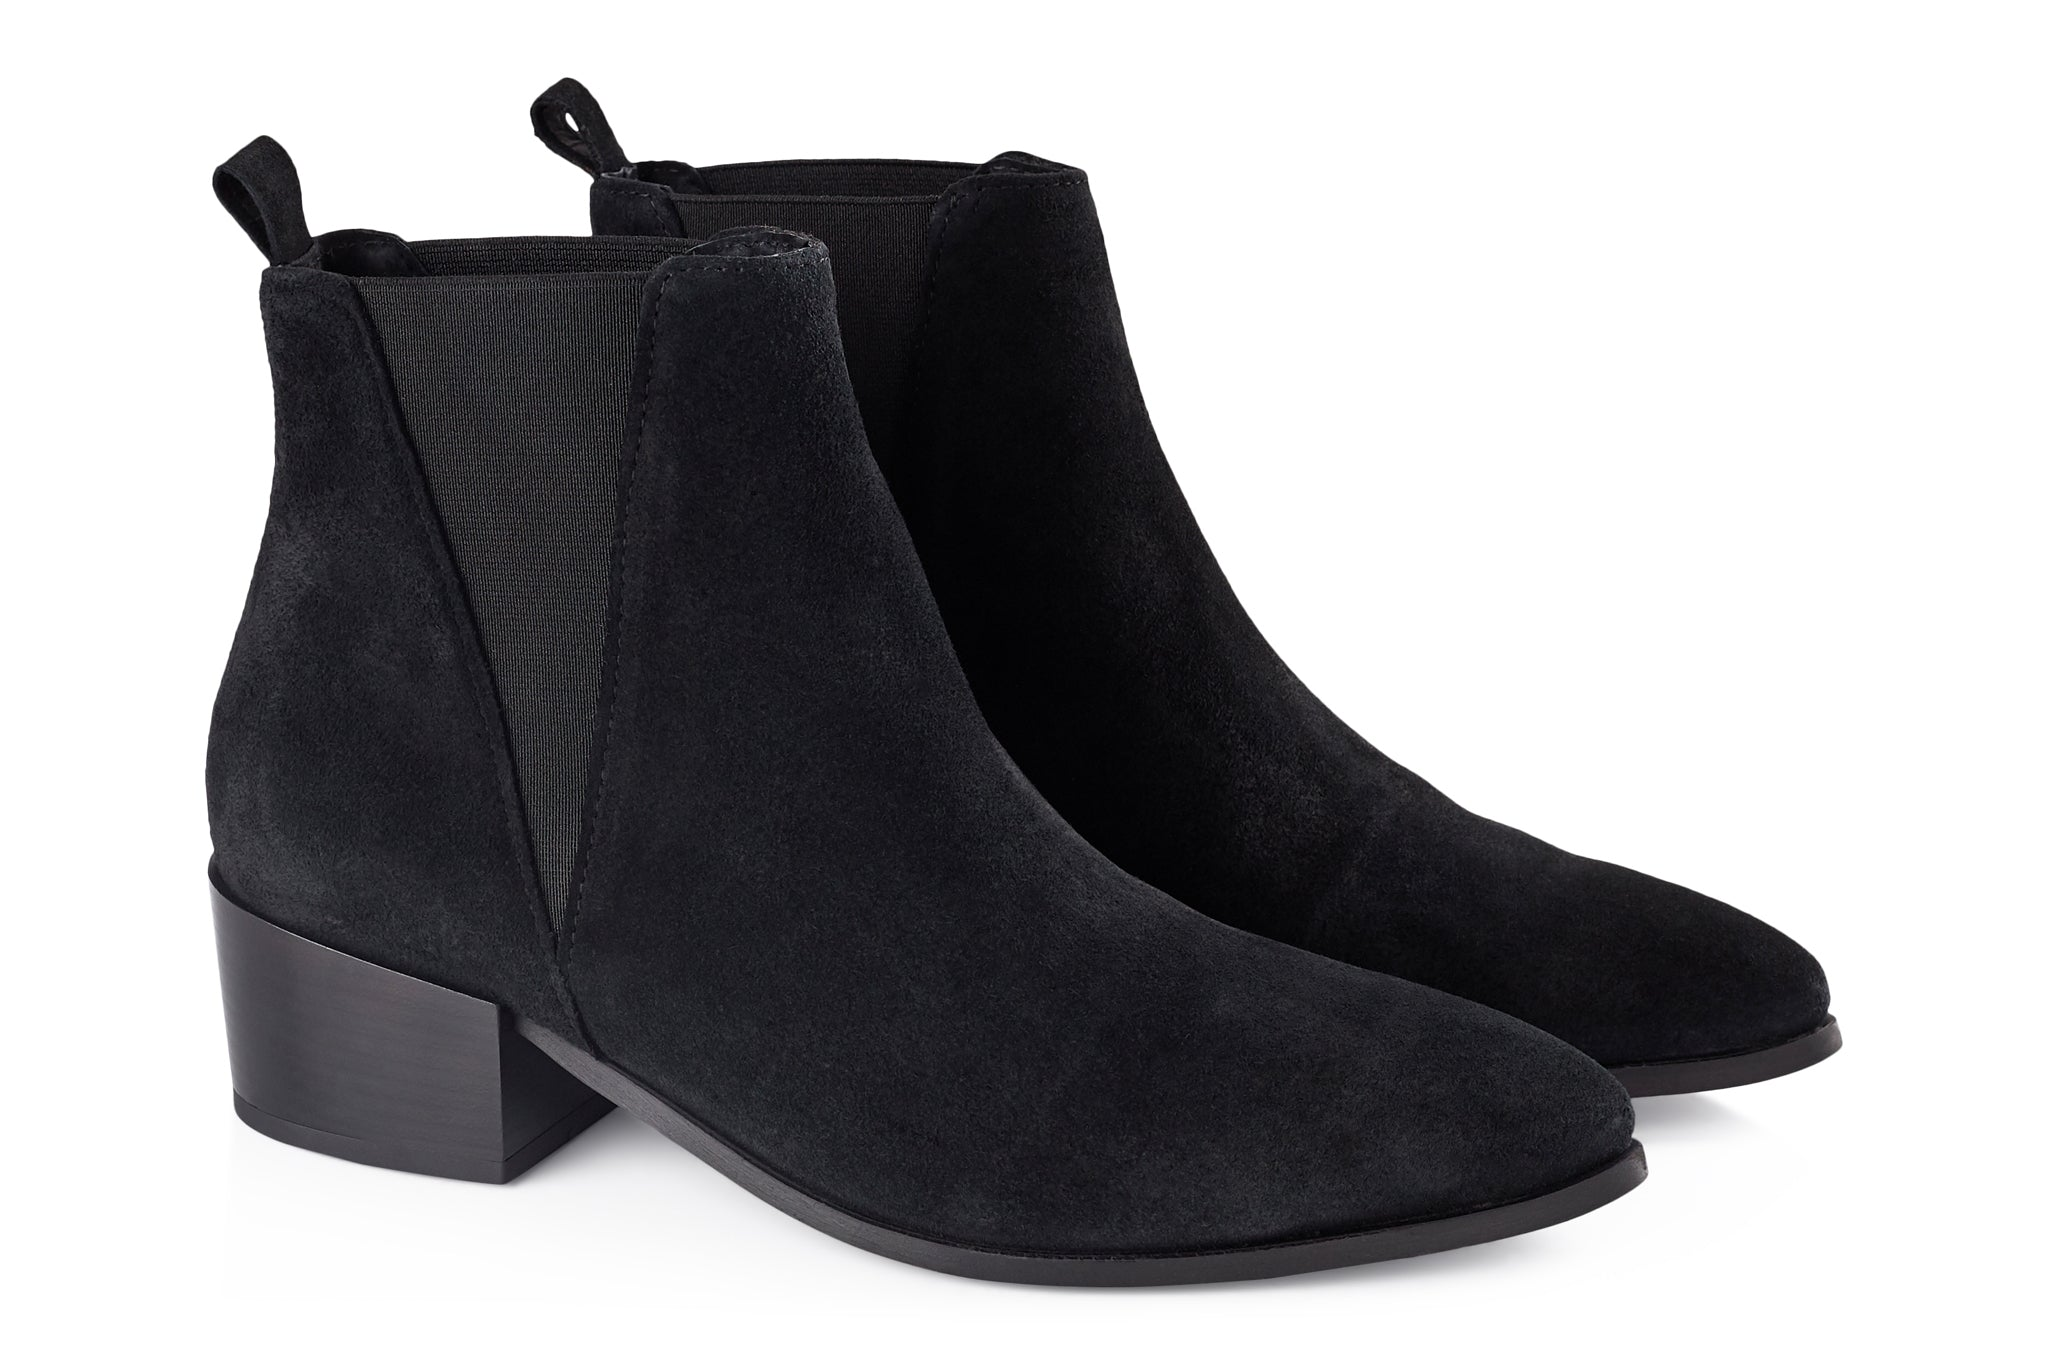 bb34134ddf4 ... Pavement Karen Boots Black suede 017 ...